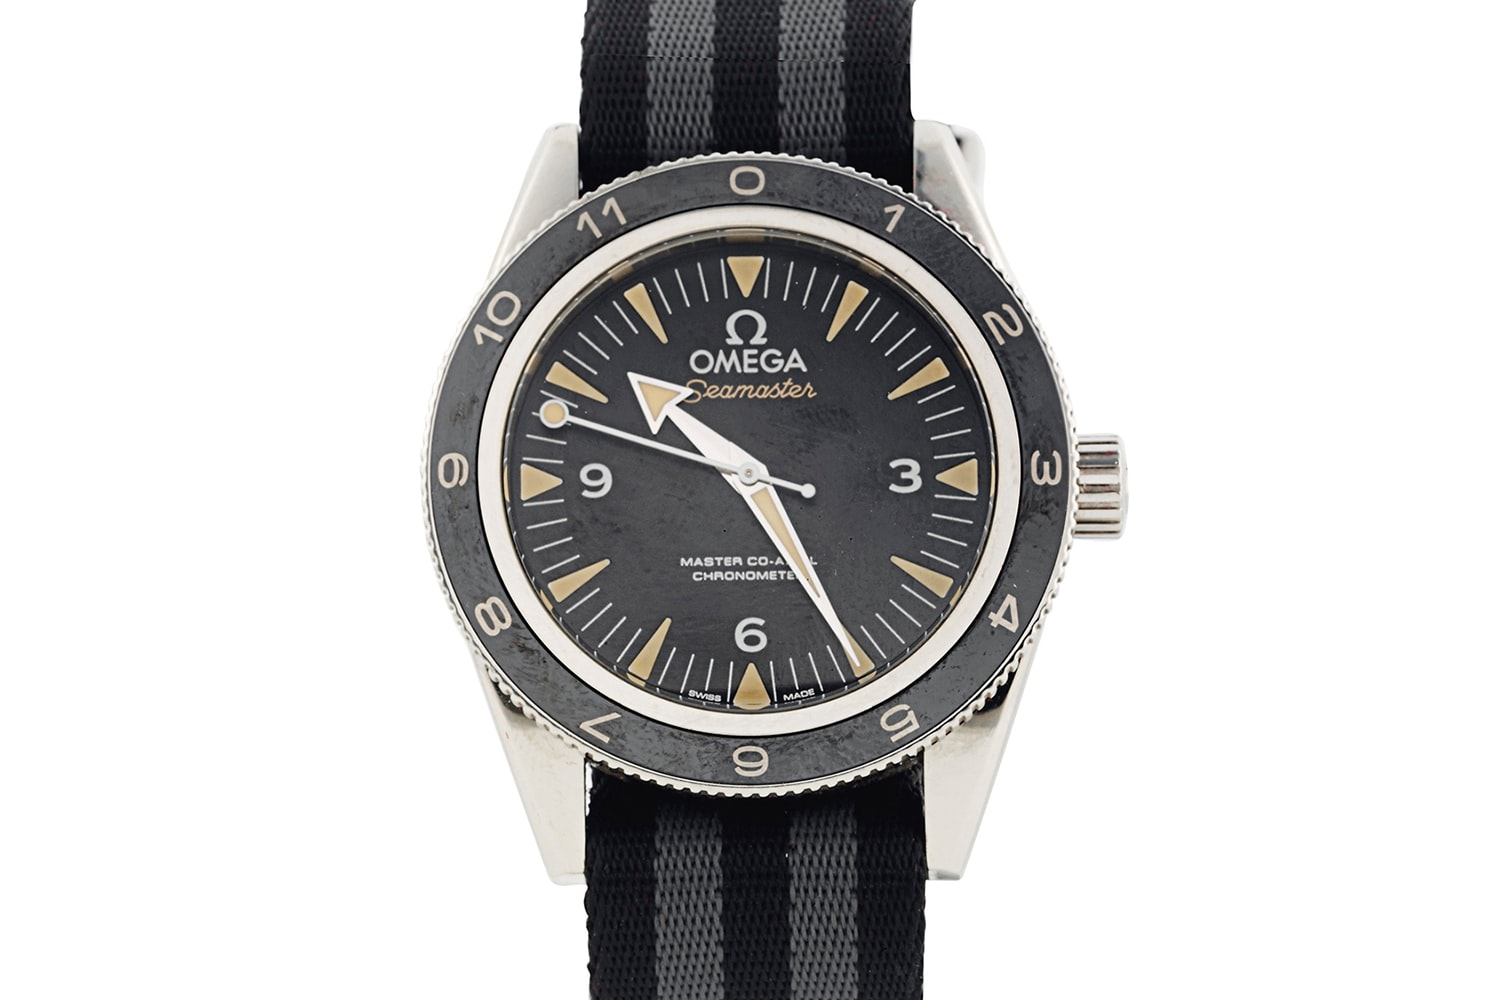 James Bond Spectre in Snow Breaking News: James Bond's Omega Seamaster From 'Spectre' Just Sold For Over $100,000; Aston Martin Fetches Close To $3.5 Million Breaking News: James Bond's Omega Seamaster From 'Spectre' Just Sold For Over $100,000; Aston Martin Fetches Close To $3.5 Million v